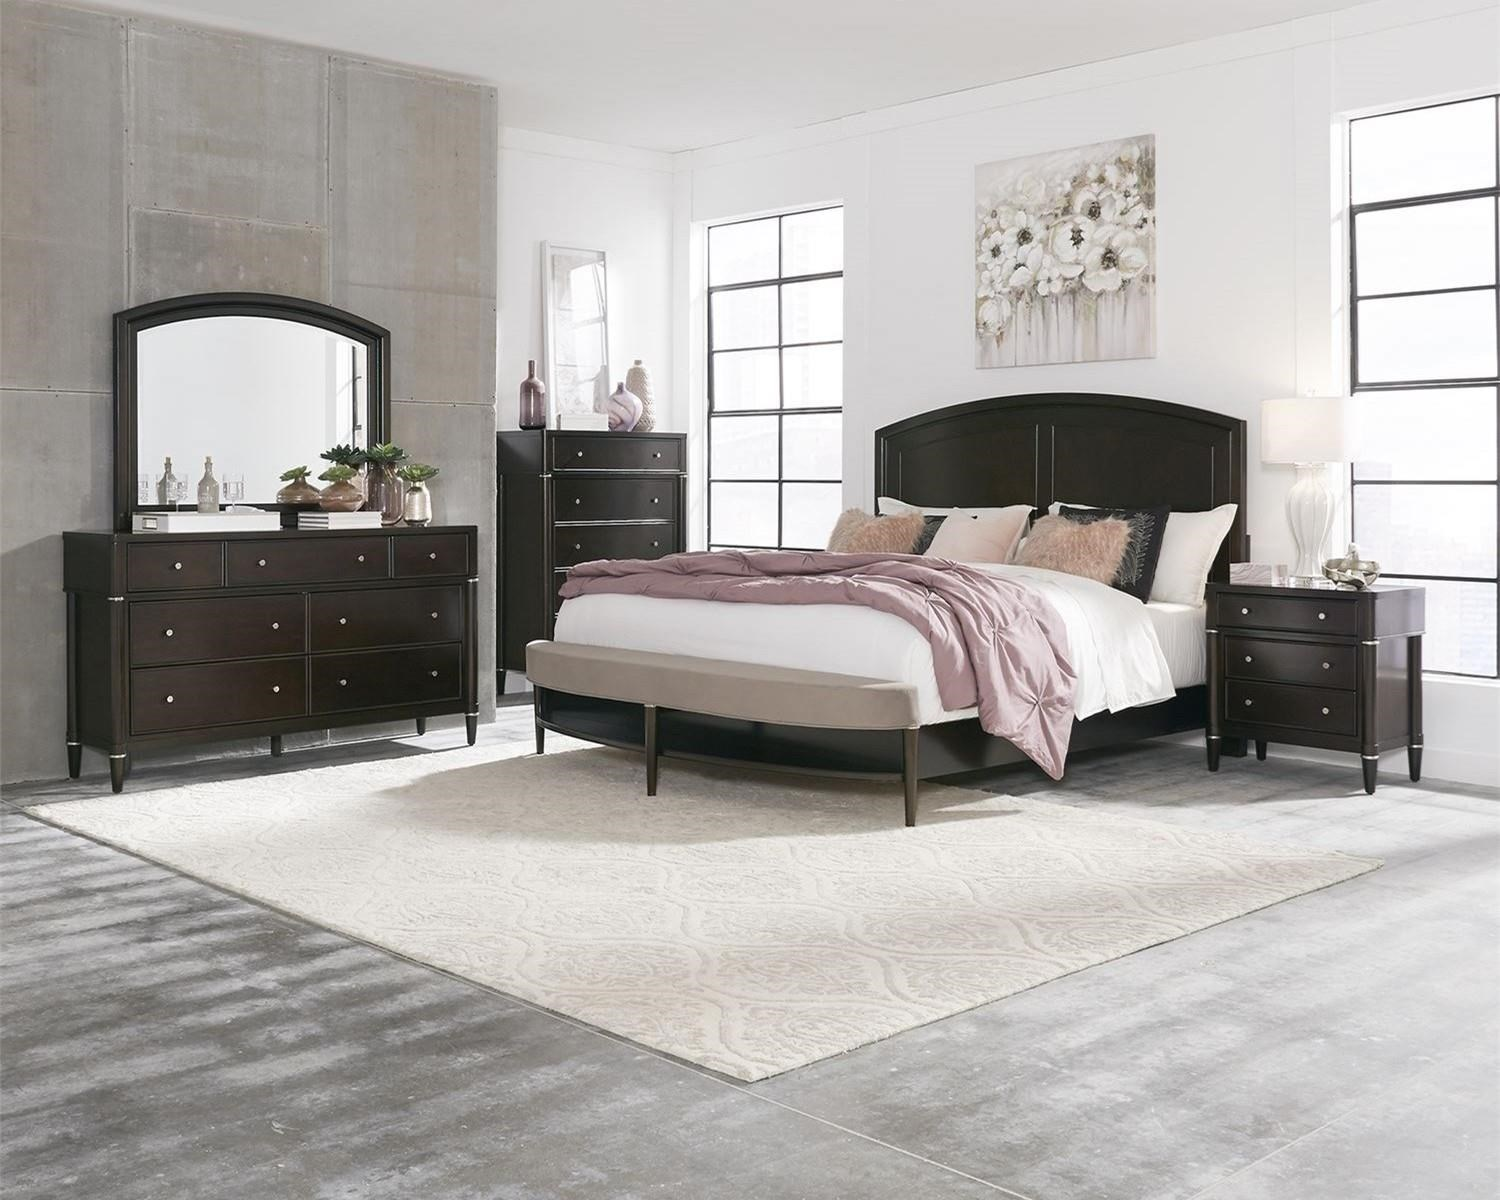 425-BR 5 PC Queen Group